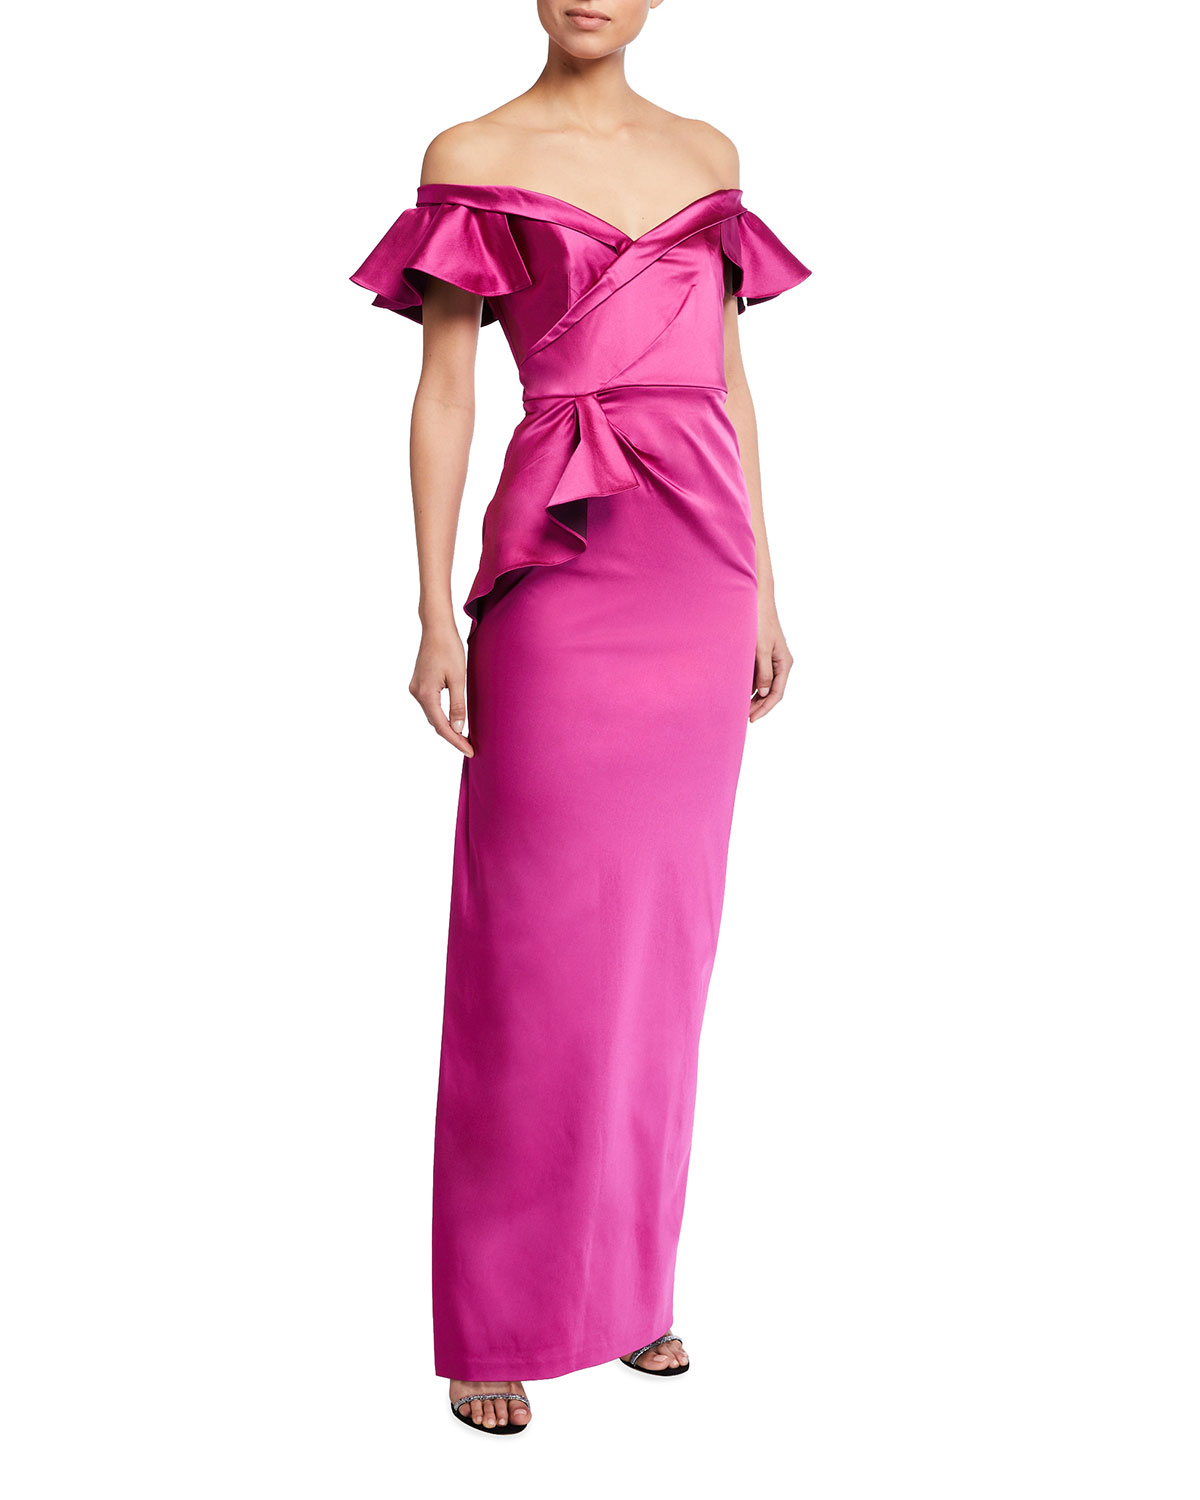 Marchesa Notte Draped Off-the-Shoulder Stretch Satin Gown w/ Side Ruffle